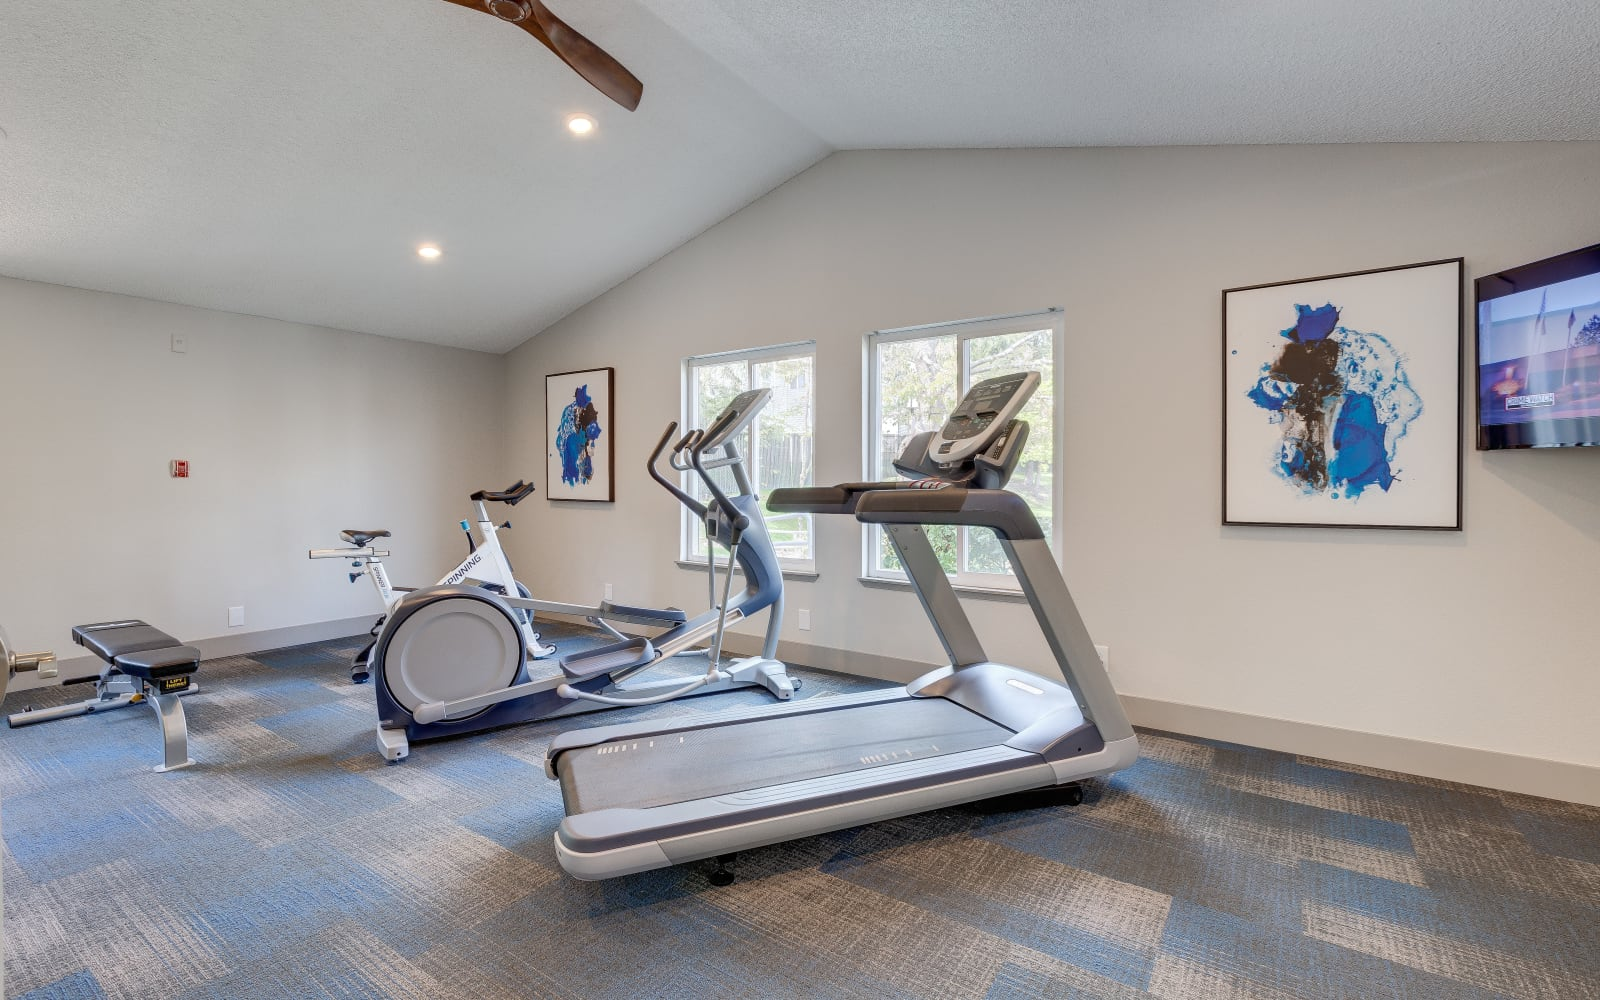 Treadmills in the fitness center at Alaire Apartments in Renton, Washington